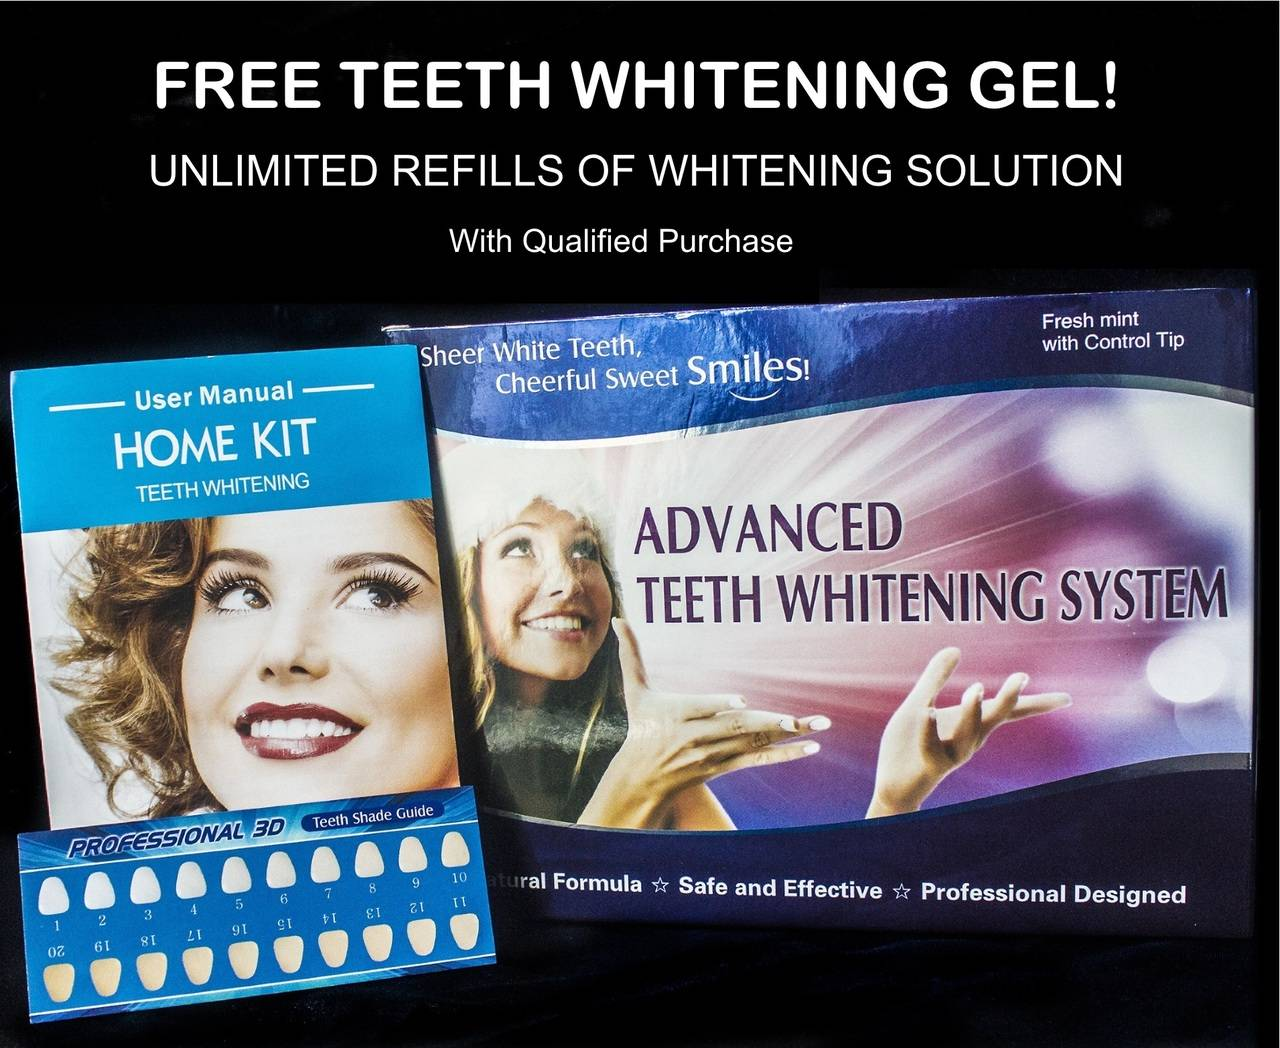 Impressive Smile Advanced Teeth Whitening Kit with Unlimited Free Refills - Best Teeth Whitening at Home